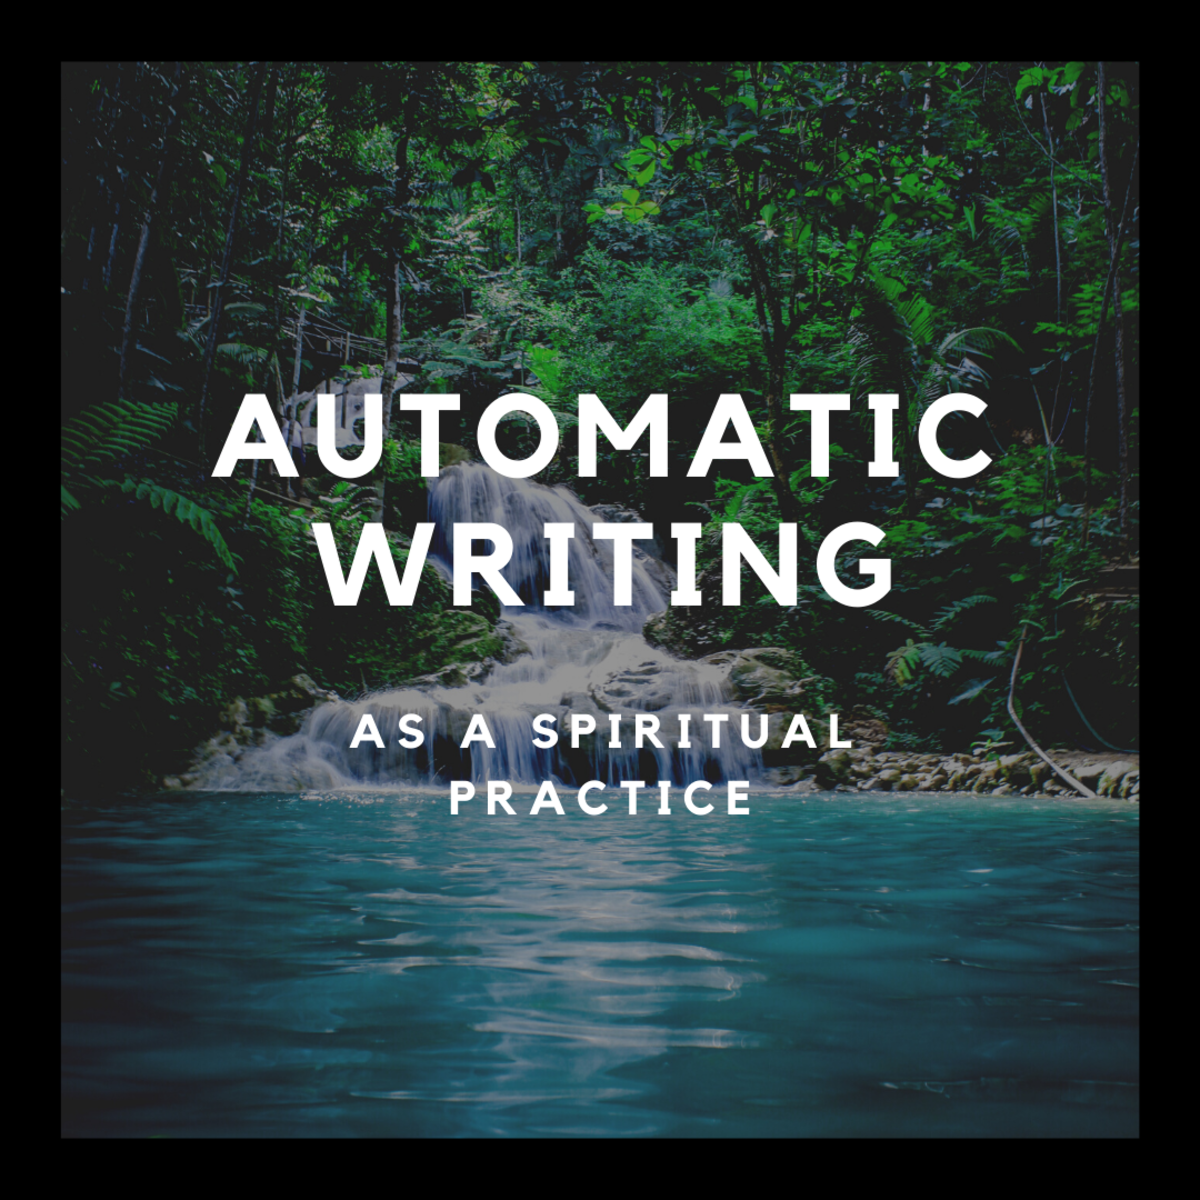 What is Automatic Writing? Read on to find out!